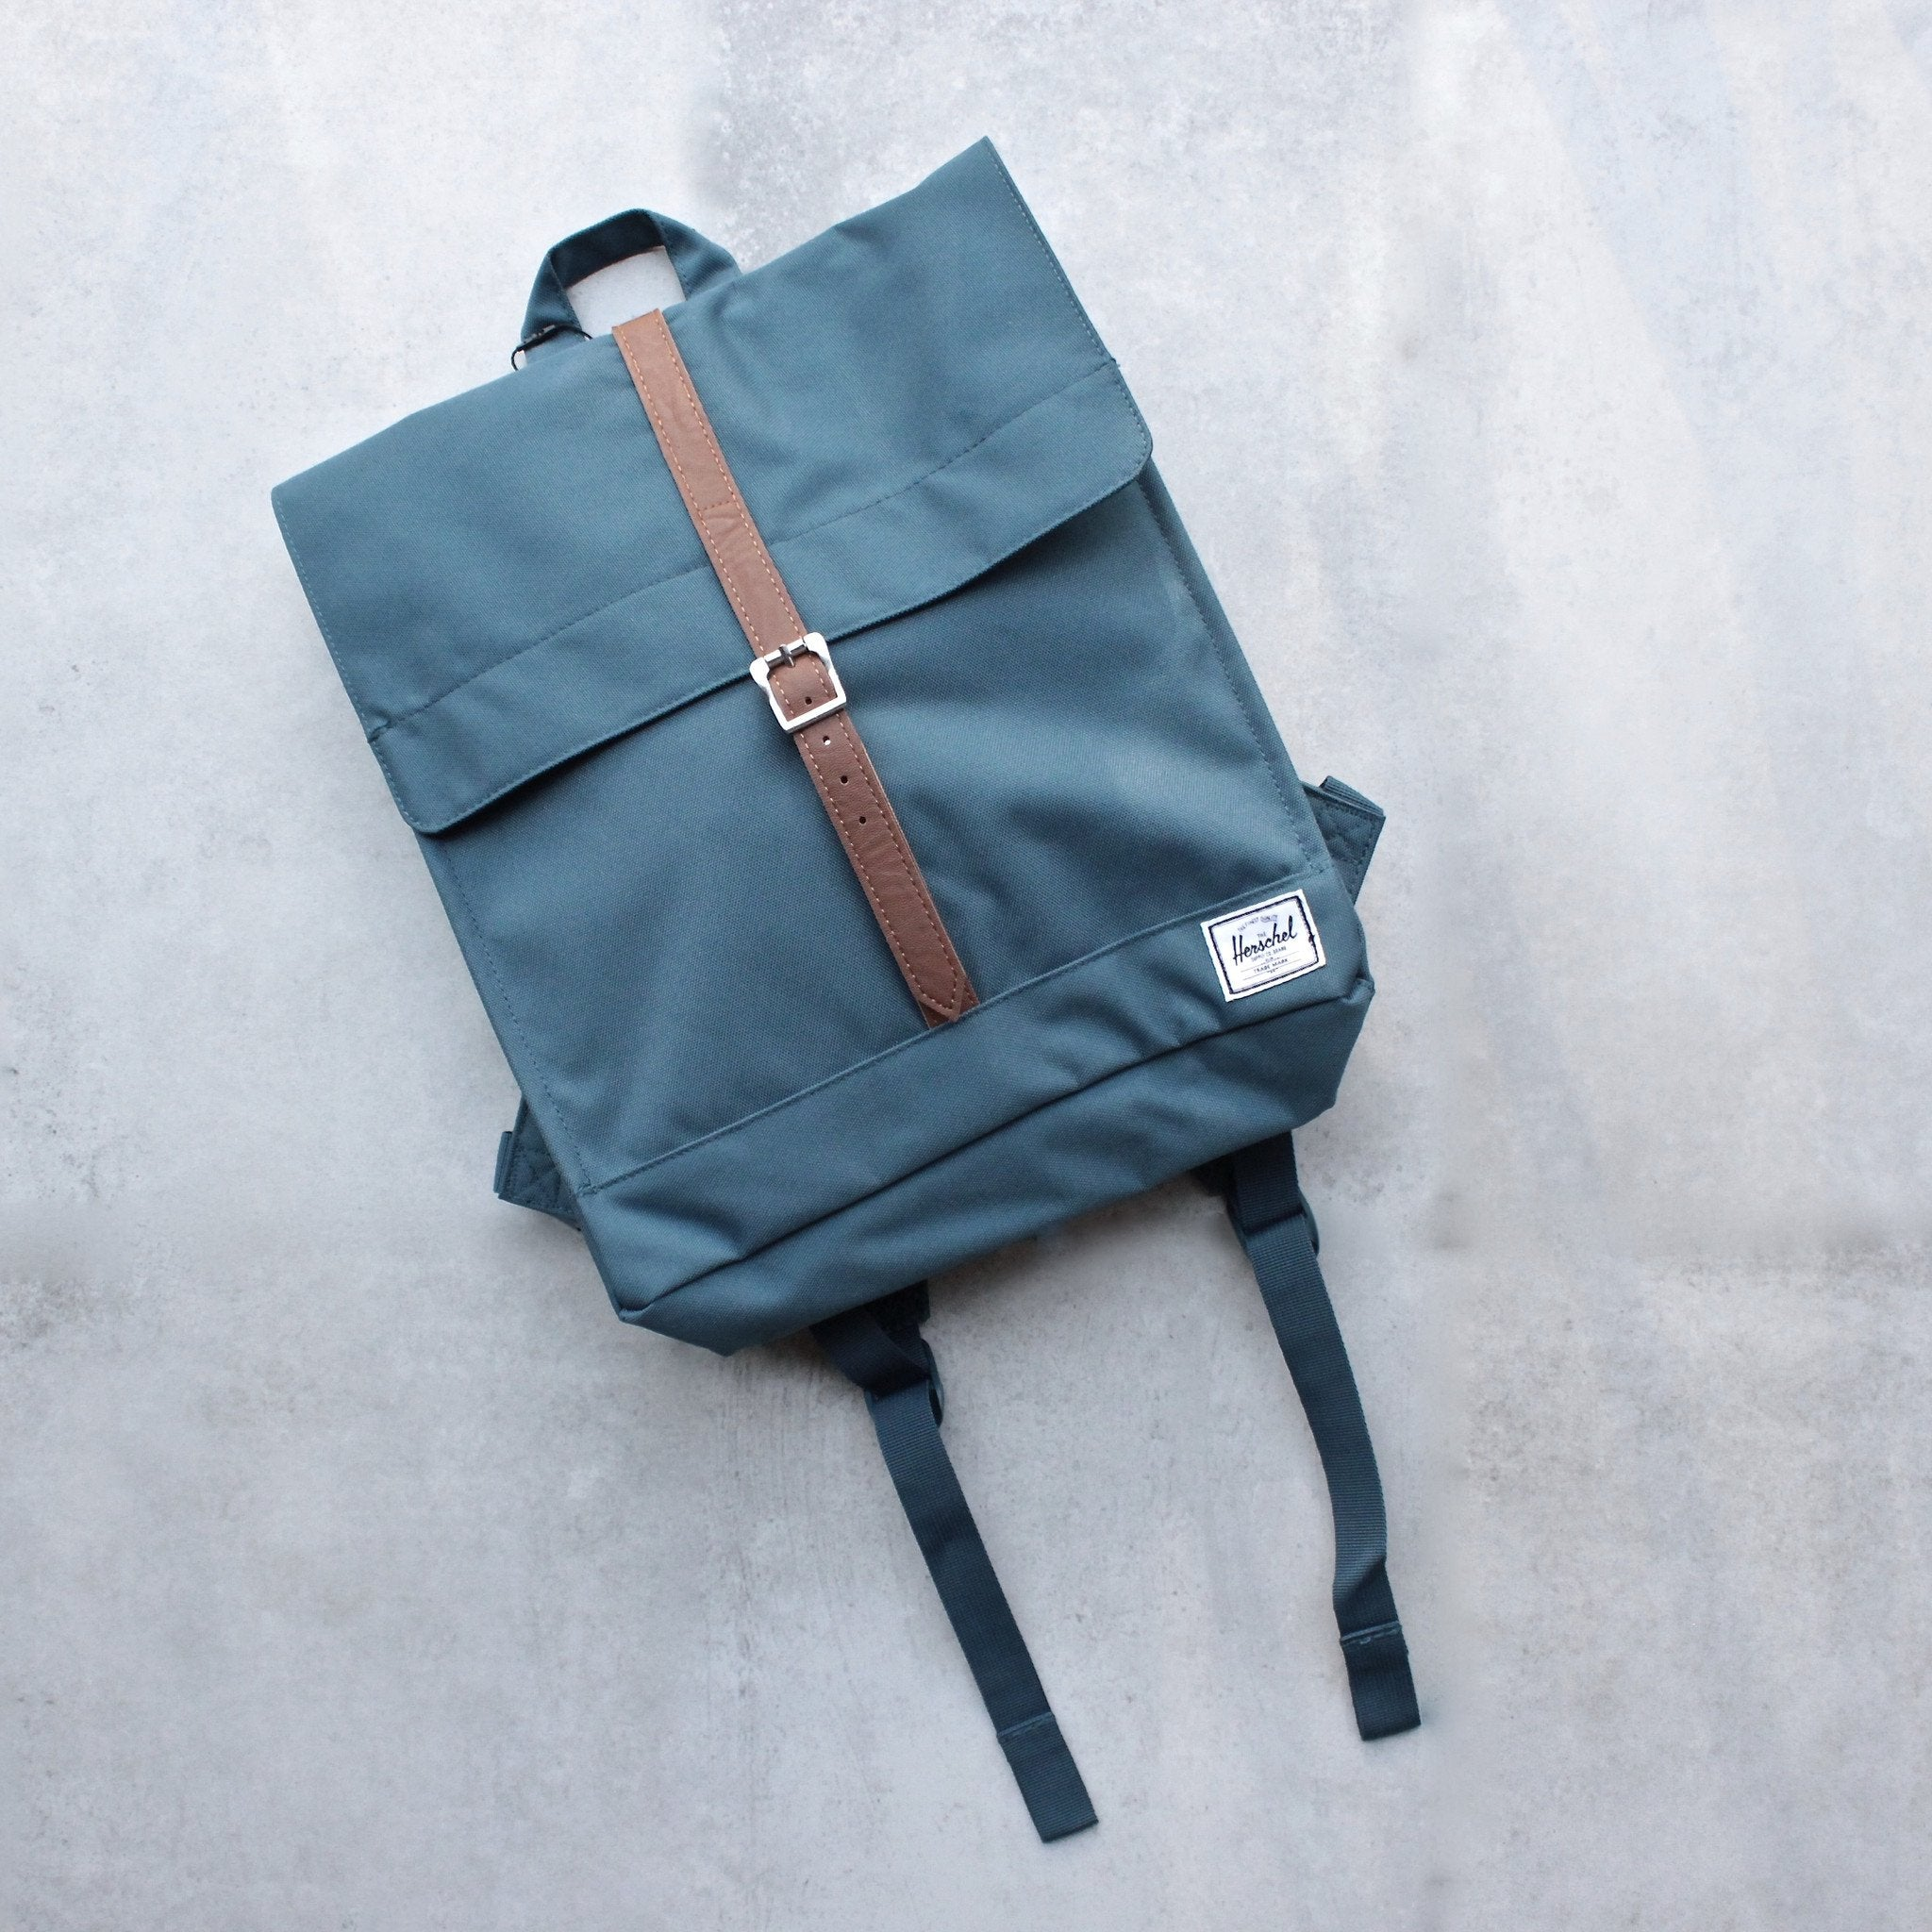 Herschel Supply - City Backpack | Mid-Volume - Indian Teal/Tan Synthetic Leather - shophearts - 1